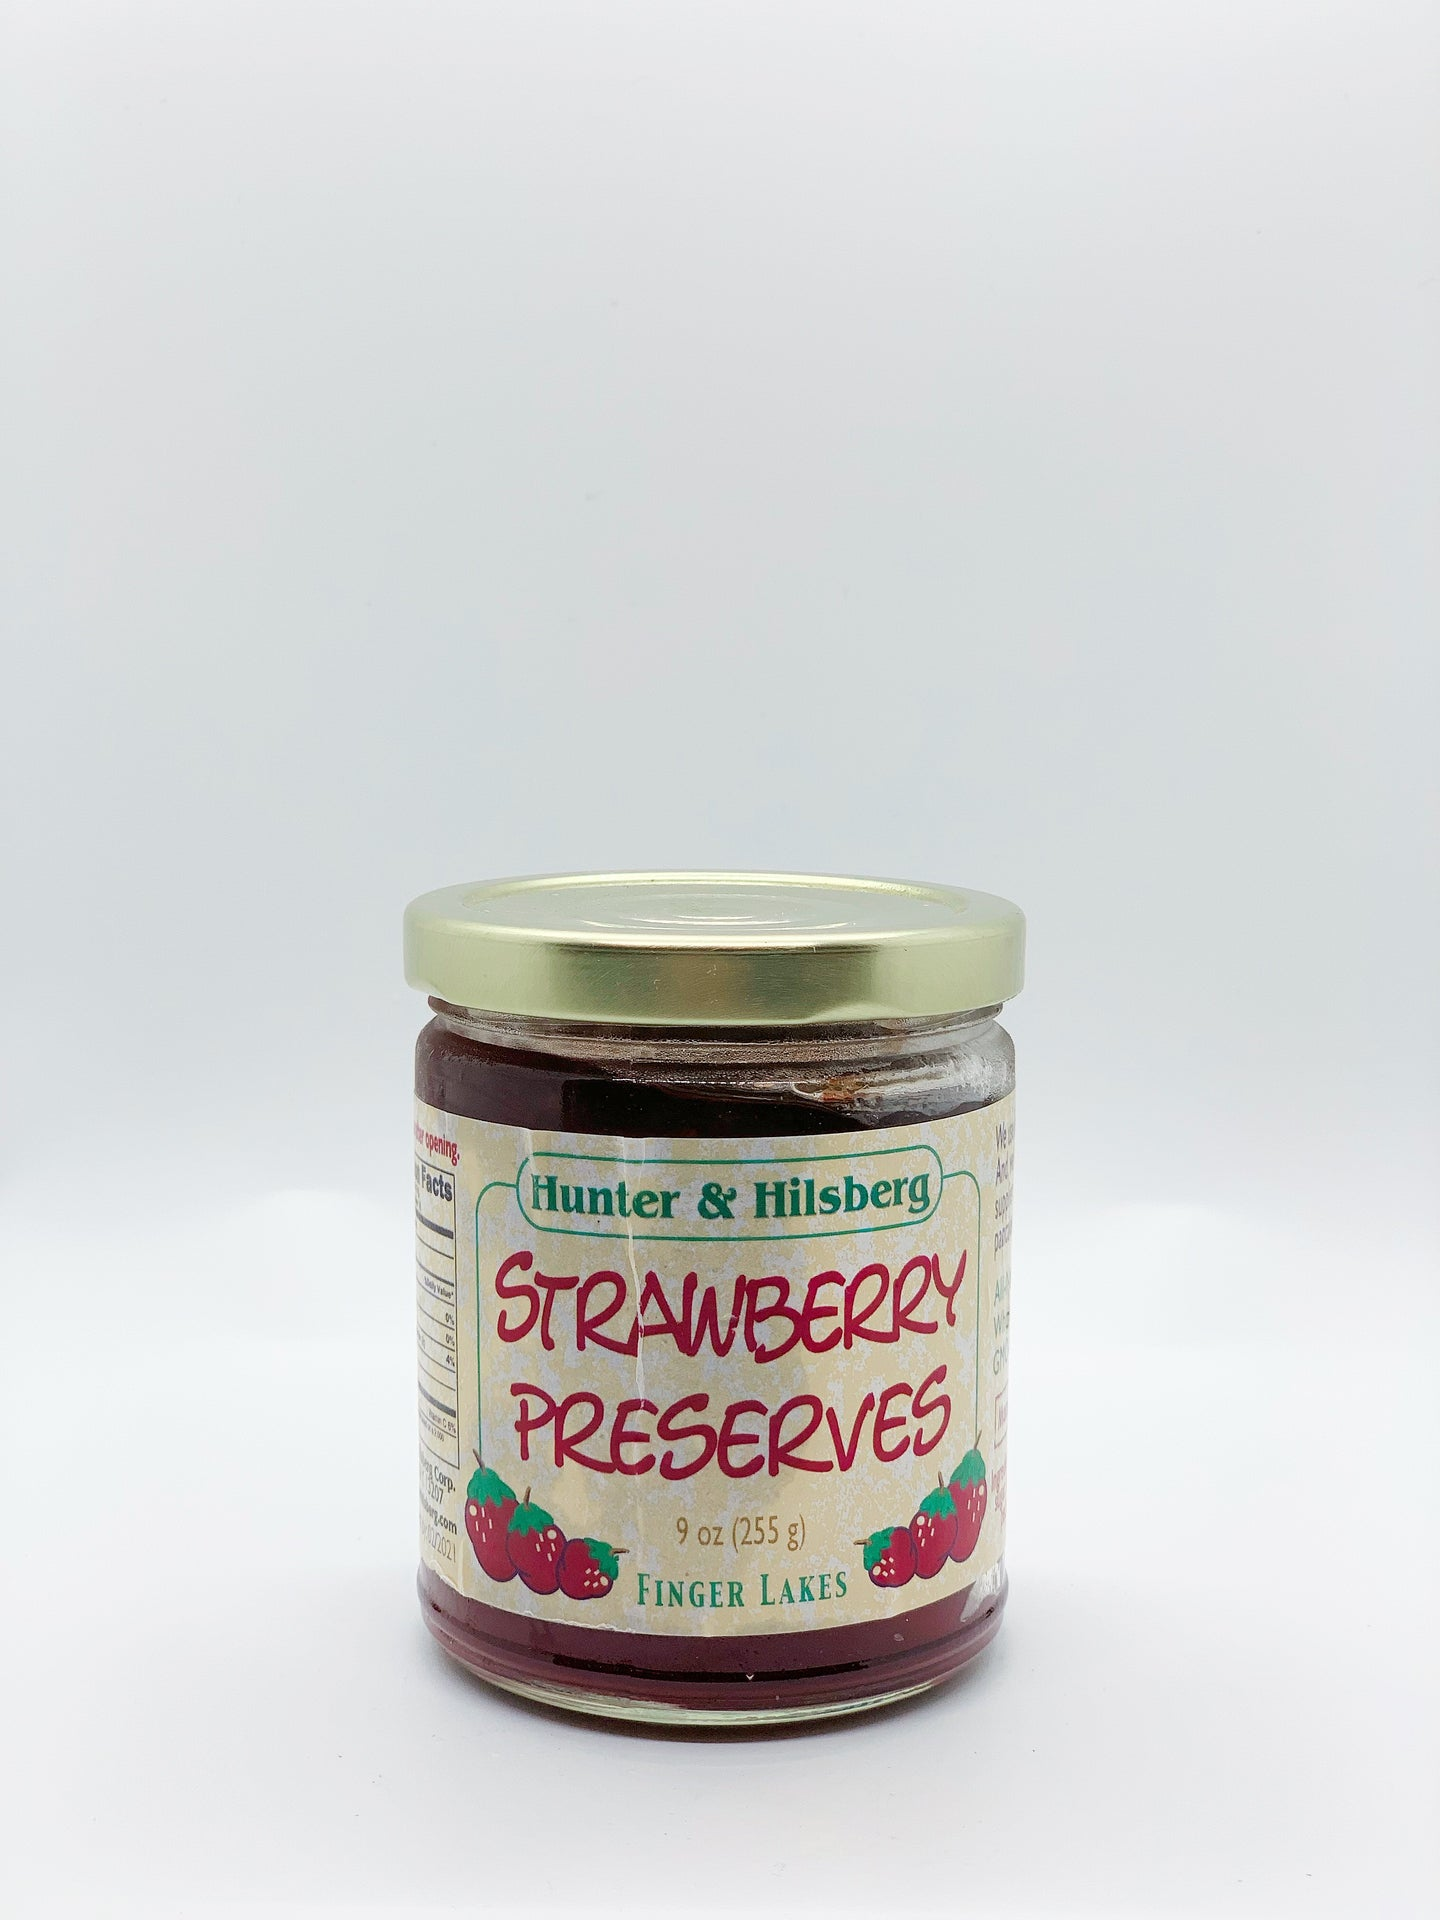 Hunter & Hilsberg Strawberry Preserves